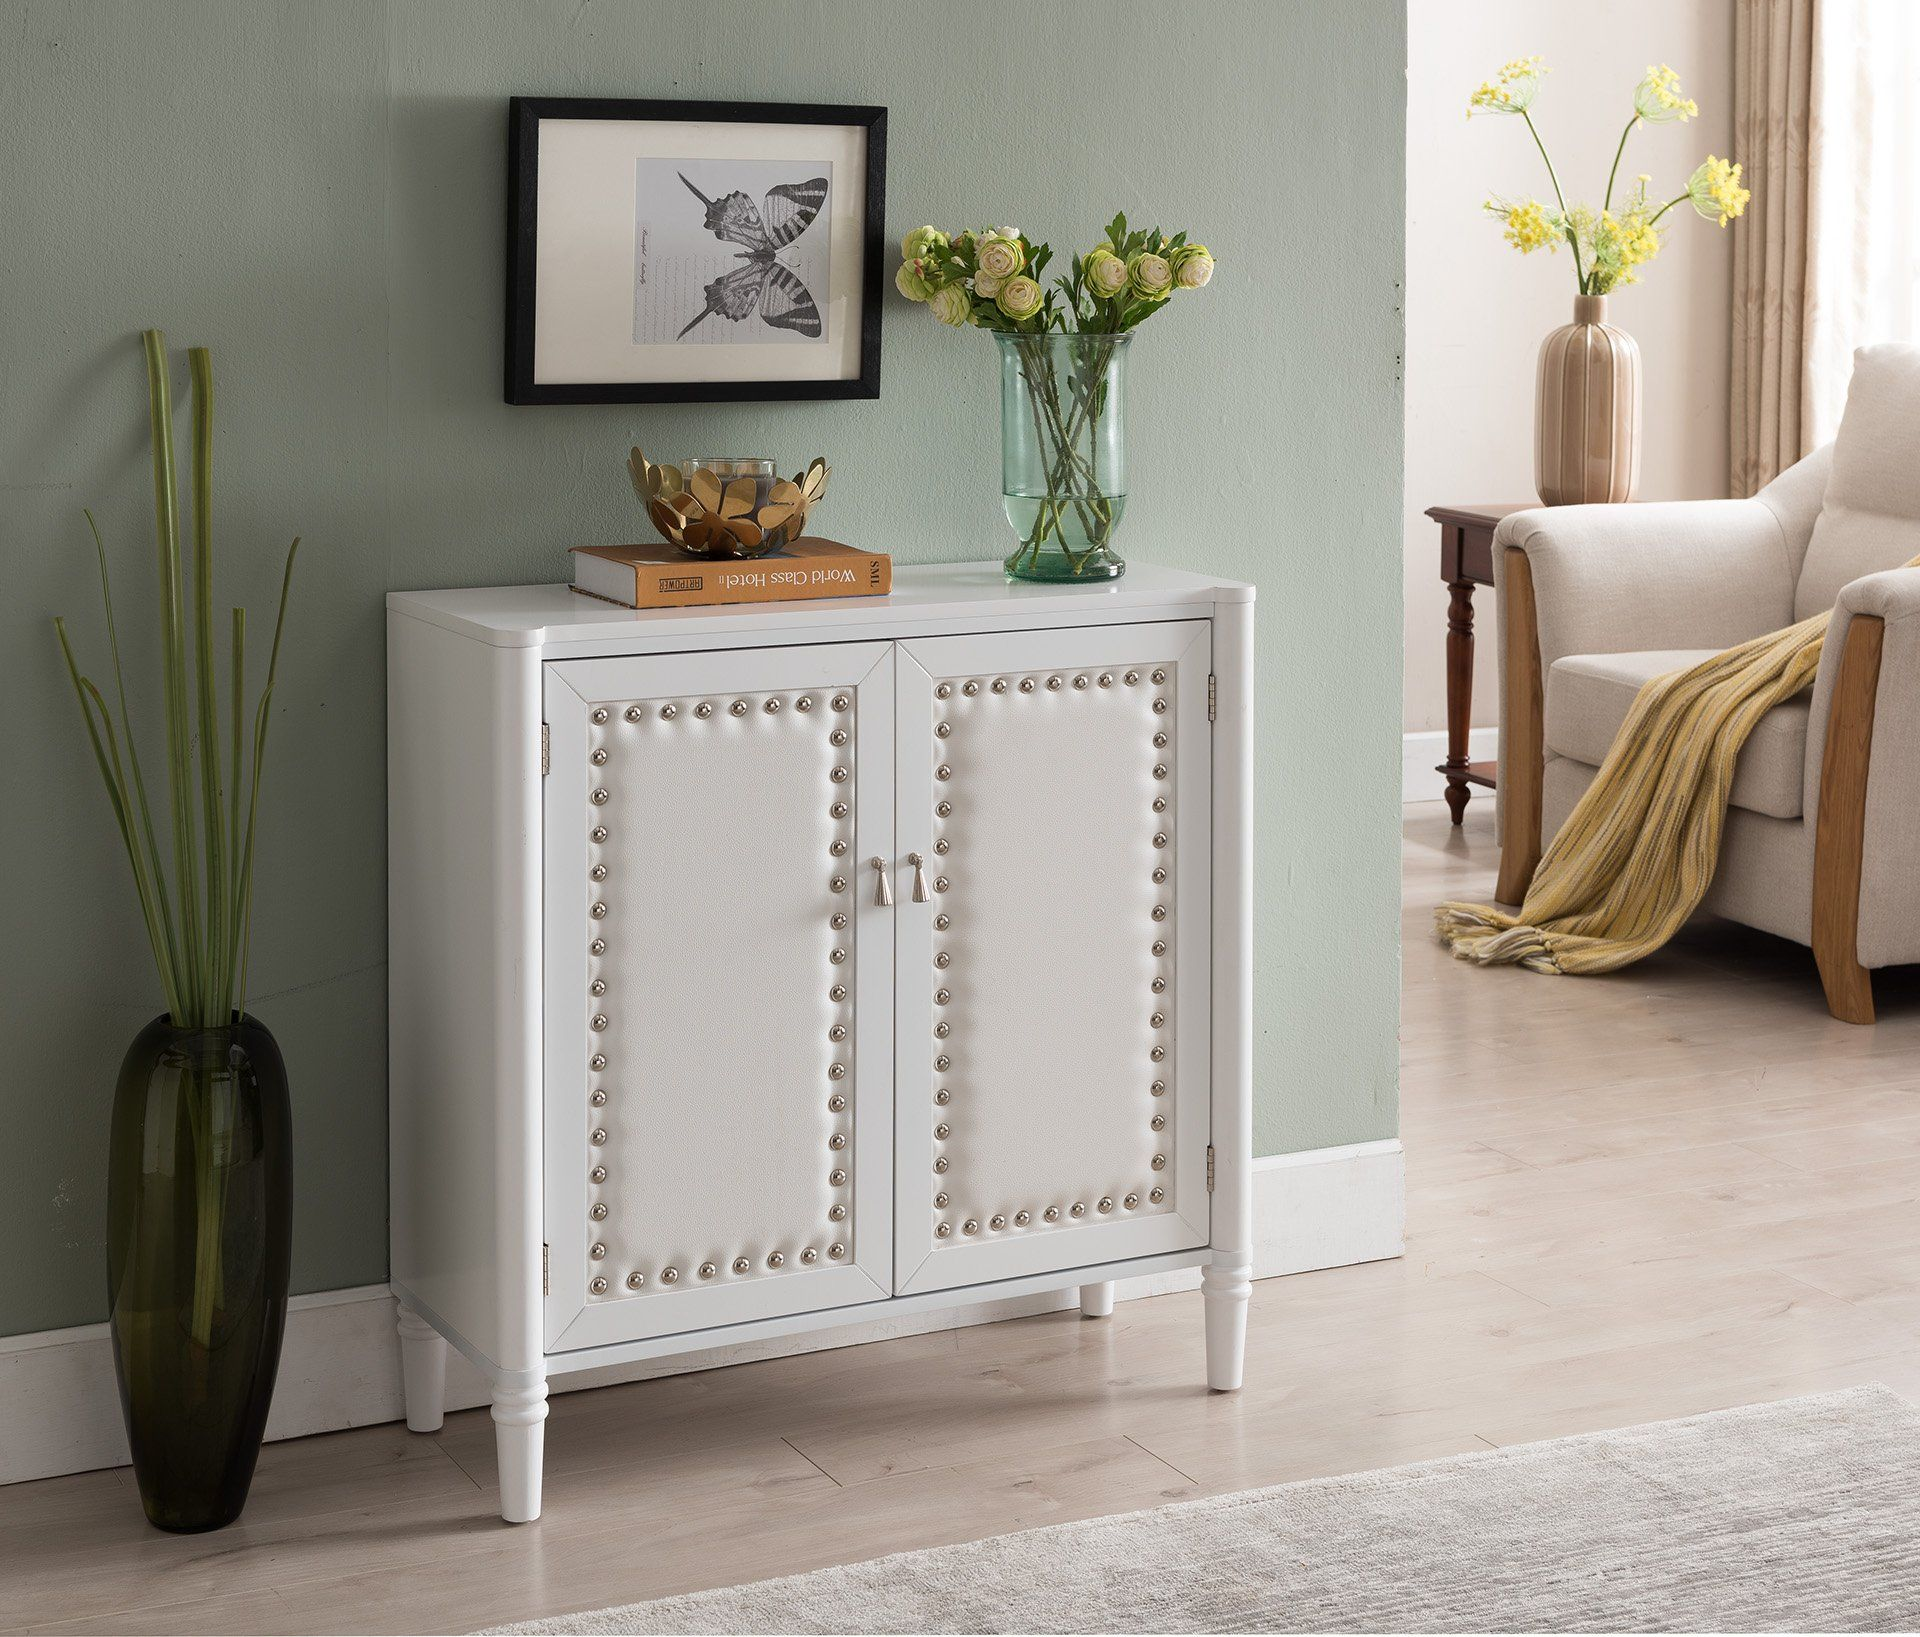 Kings Brand Furniture 2 Door Entryway Console Table Accent Cabinet White White You Can Get Additional Details A Leather Console Table Furniture Accent Doors